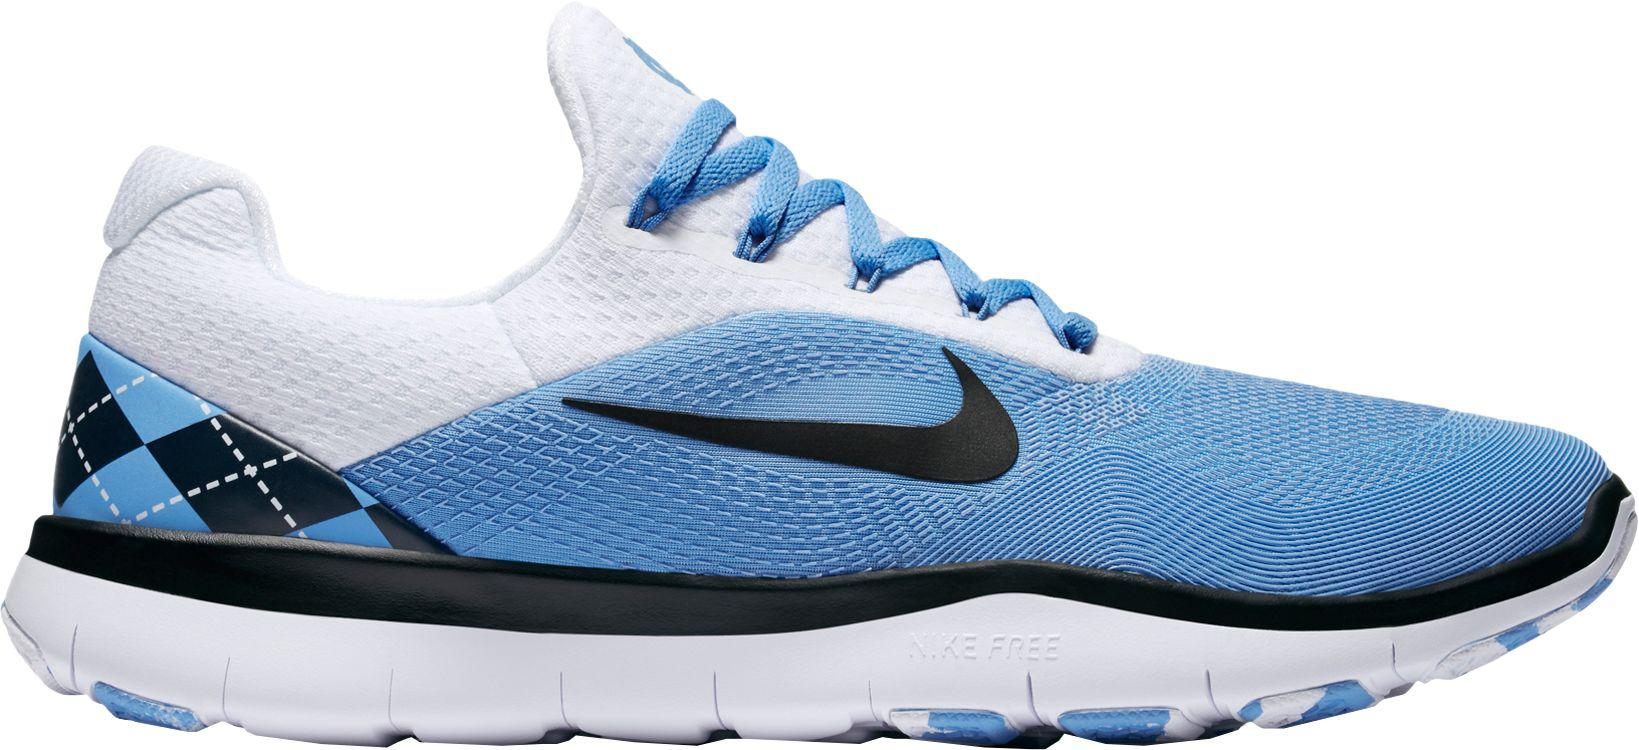 1a98e974e9ce ... get lyst nike free trainer v7 week zero north carolina edition 72db1  f6907